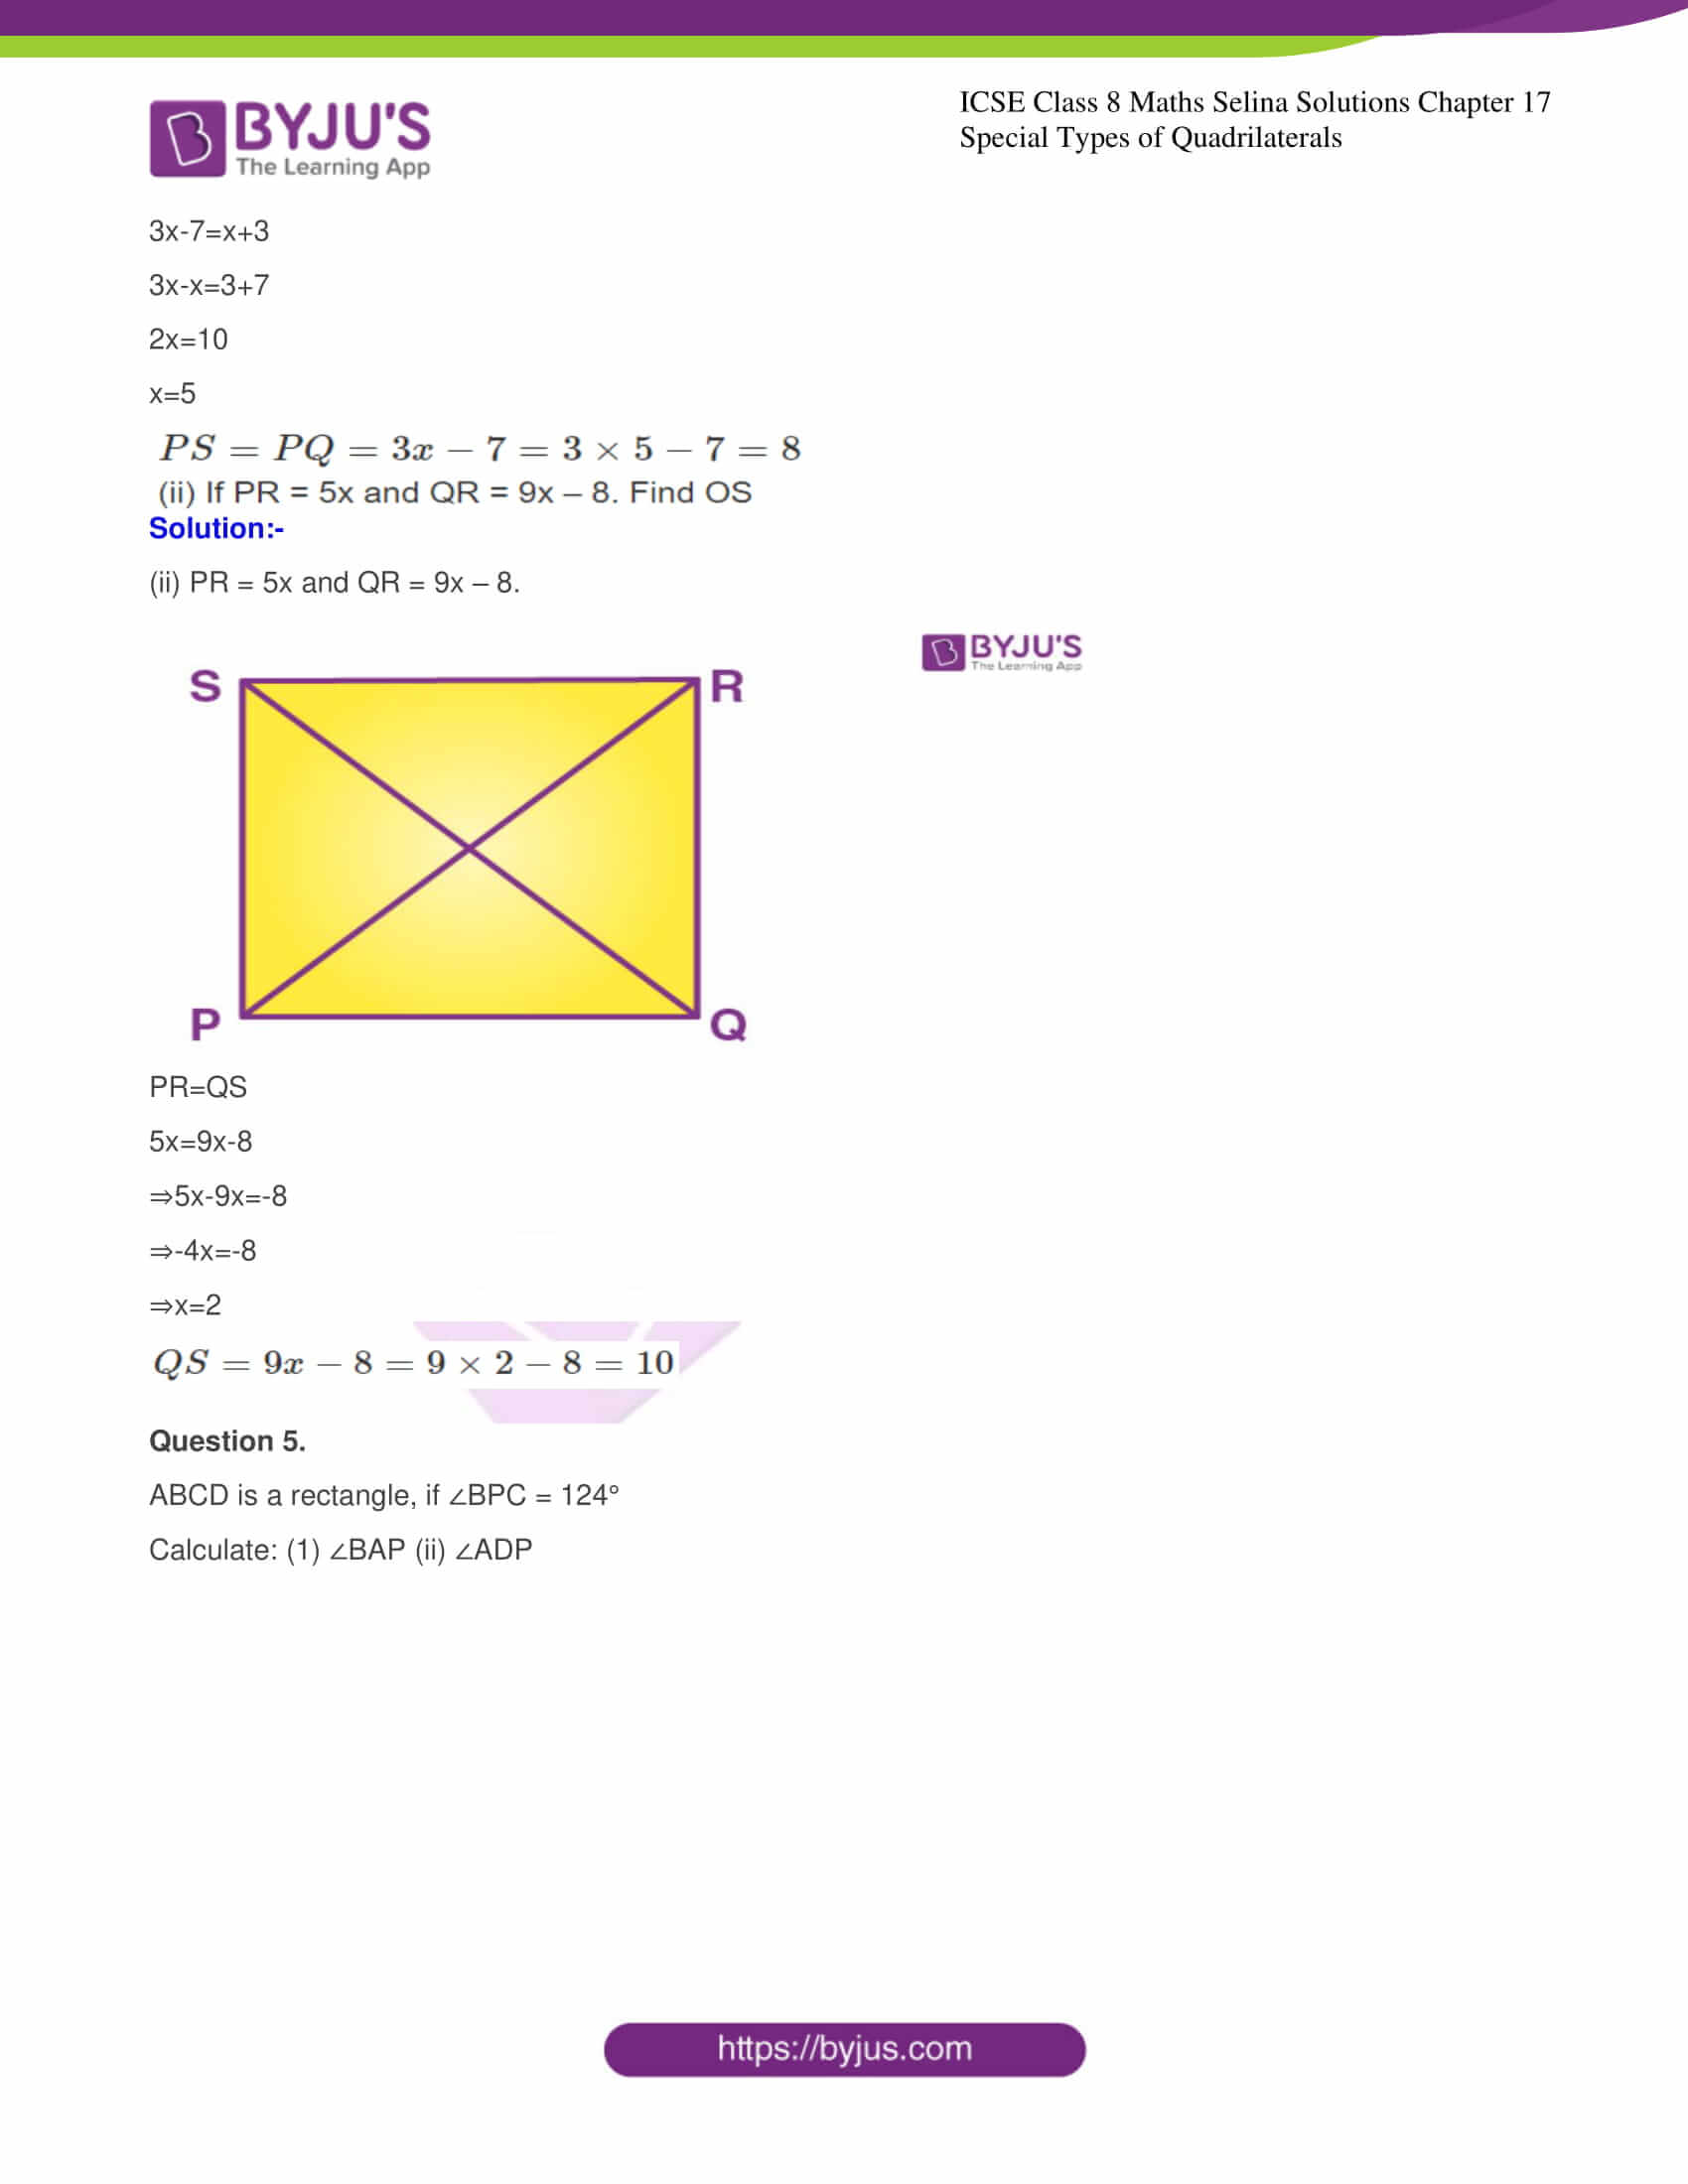 icse class 8 maths may3 selina solutions chapter 17 special types of quadrilaterals 04